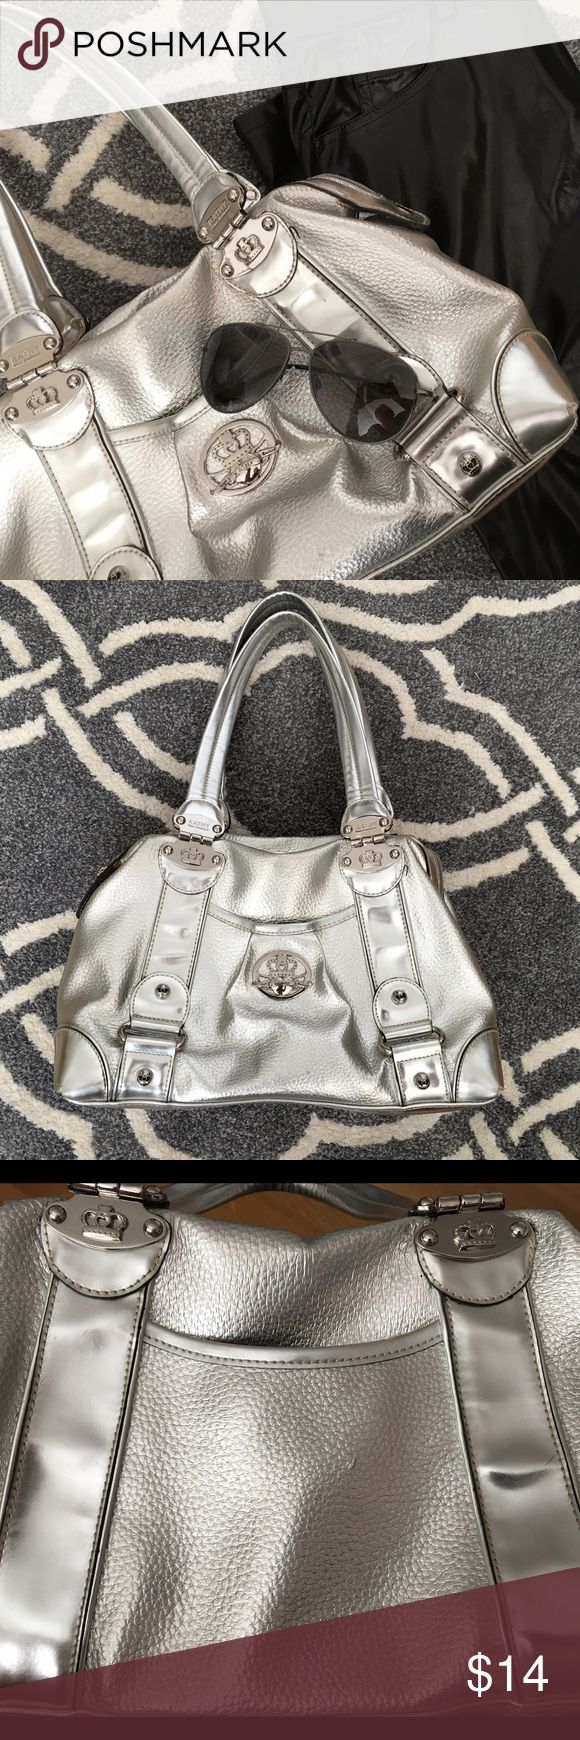 Kathy Van Zeeland silver metallic bag! Kathy Van Zeeland silver metallic bag! This bag is super fun and has been through some good times! The interior has one small pen mark in one of the corners (hard to see when looking in the bag). While it's still in good shape, the exterior has some wear and tear. The feet are somewhat worn, some marks here and there (see last photo above). Priced accordingly. I don't trade. Reasonable offers welcome. Thanks! 😊 Kathy Van Zeeland Bags